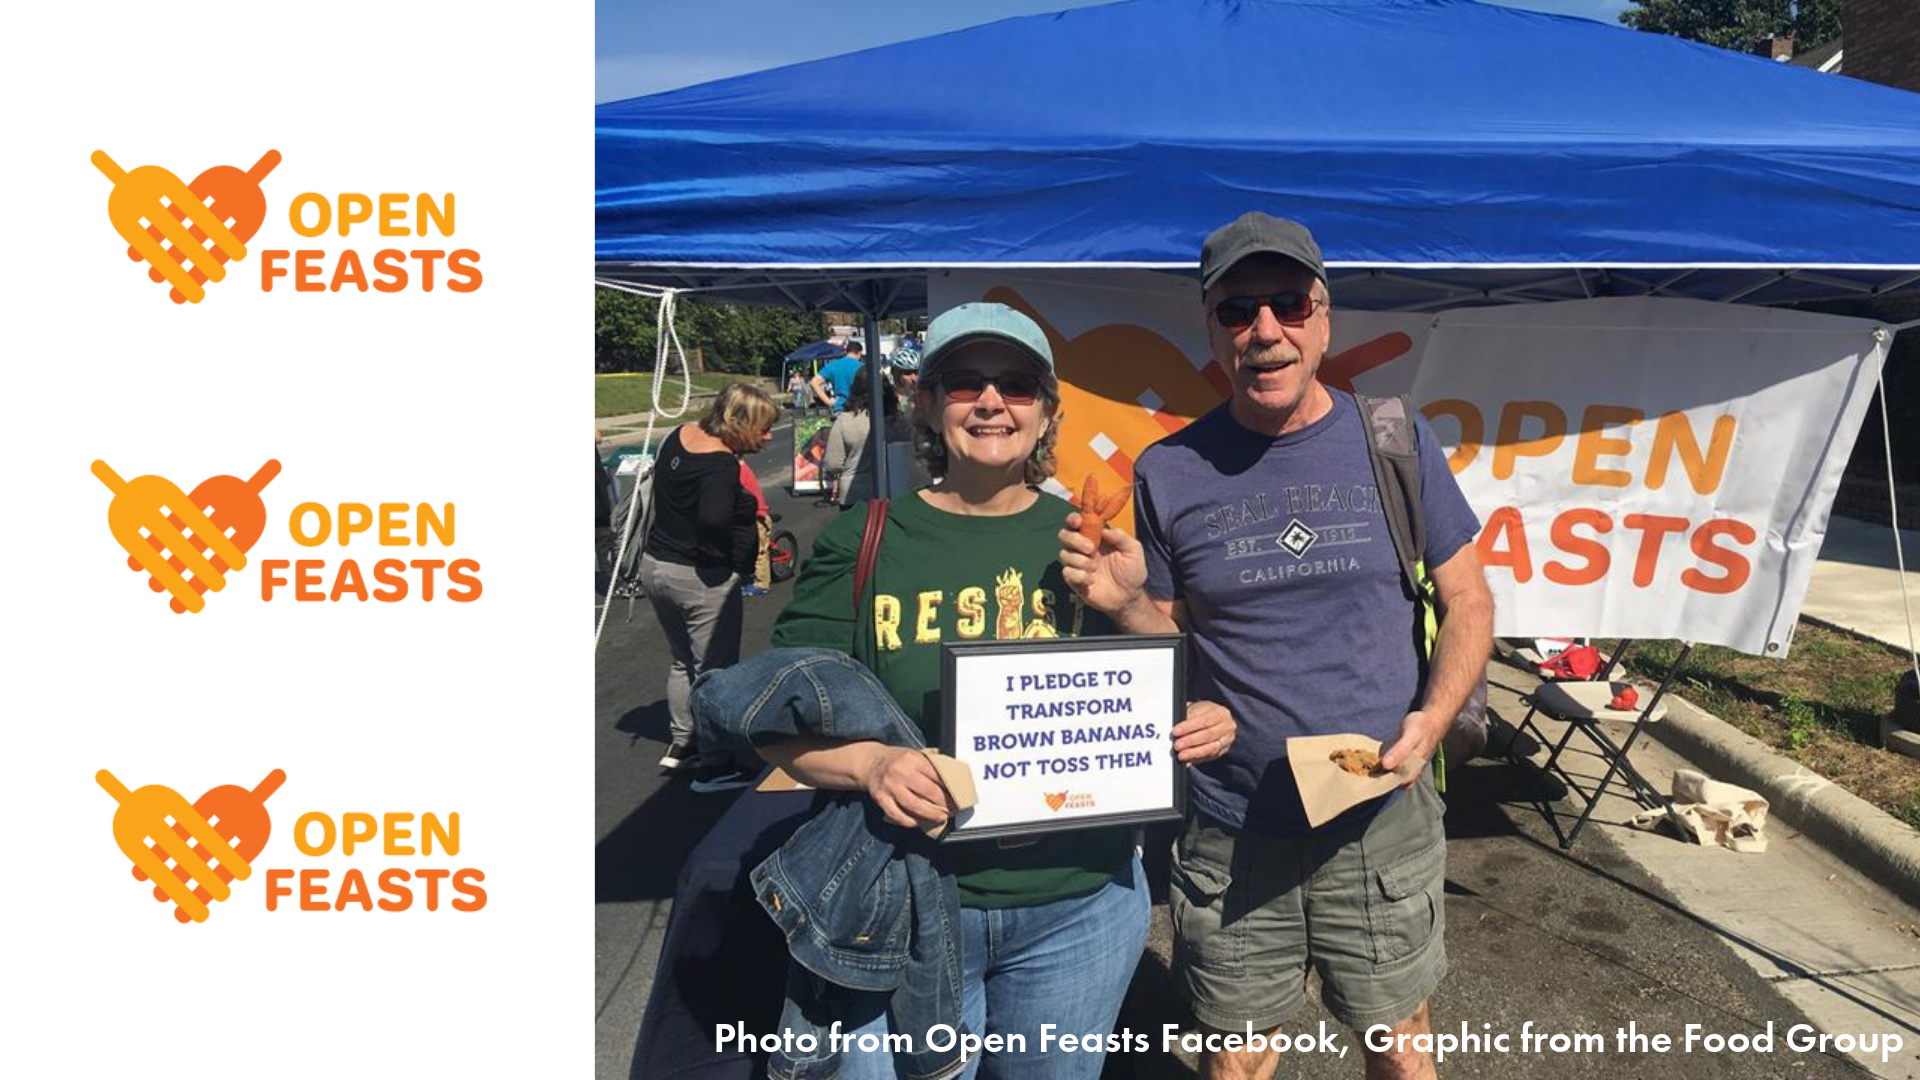 Open feasts logo and folks enjoying their tent